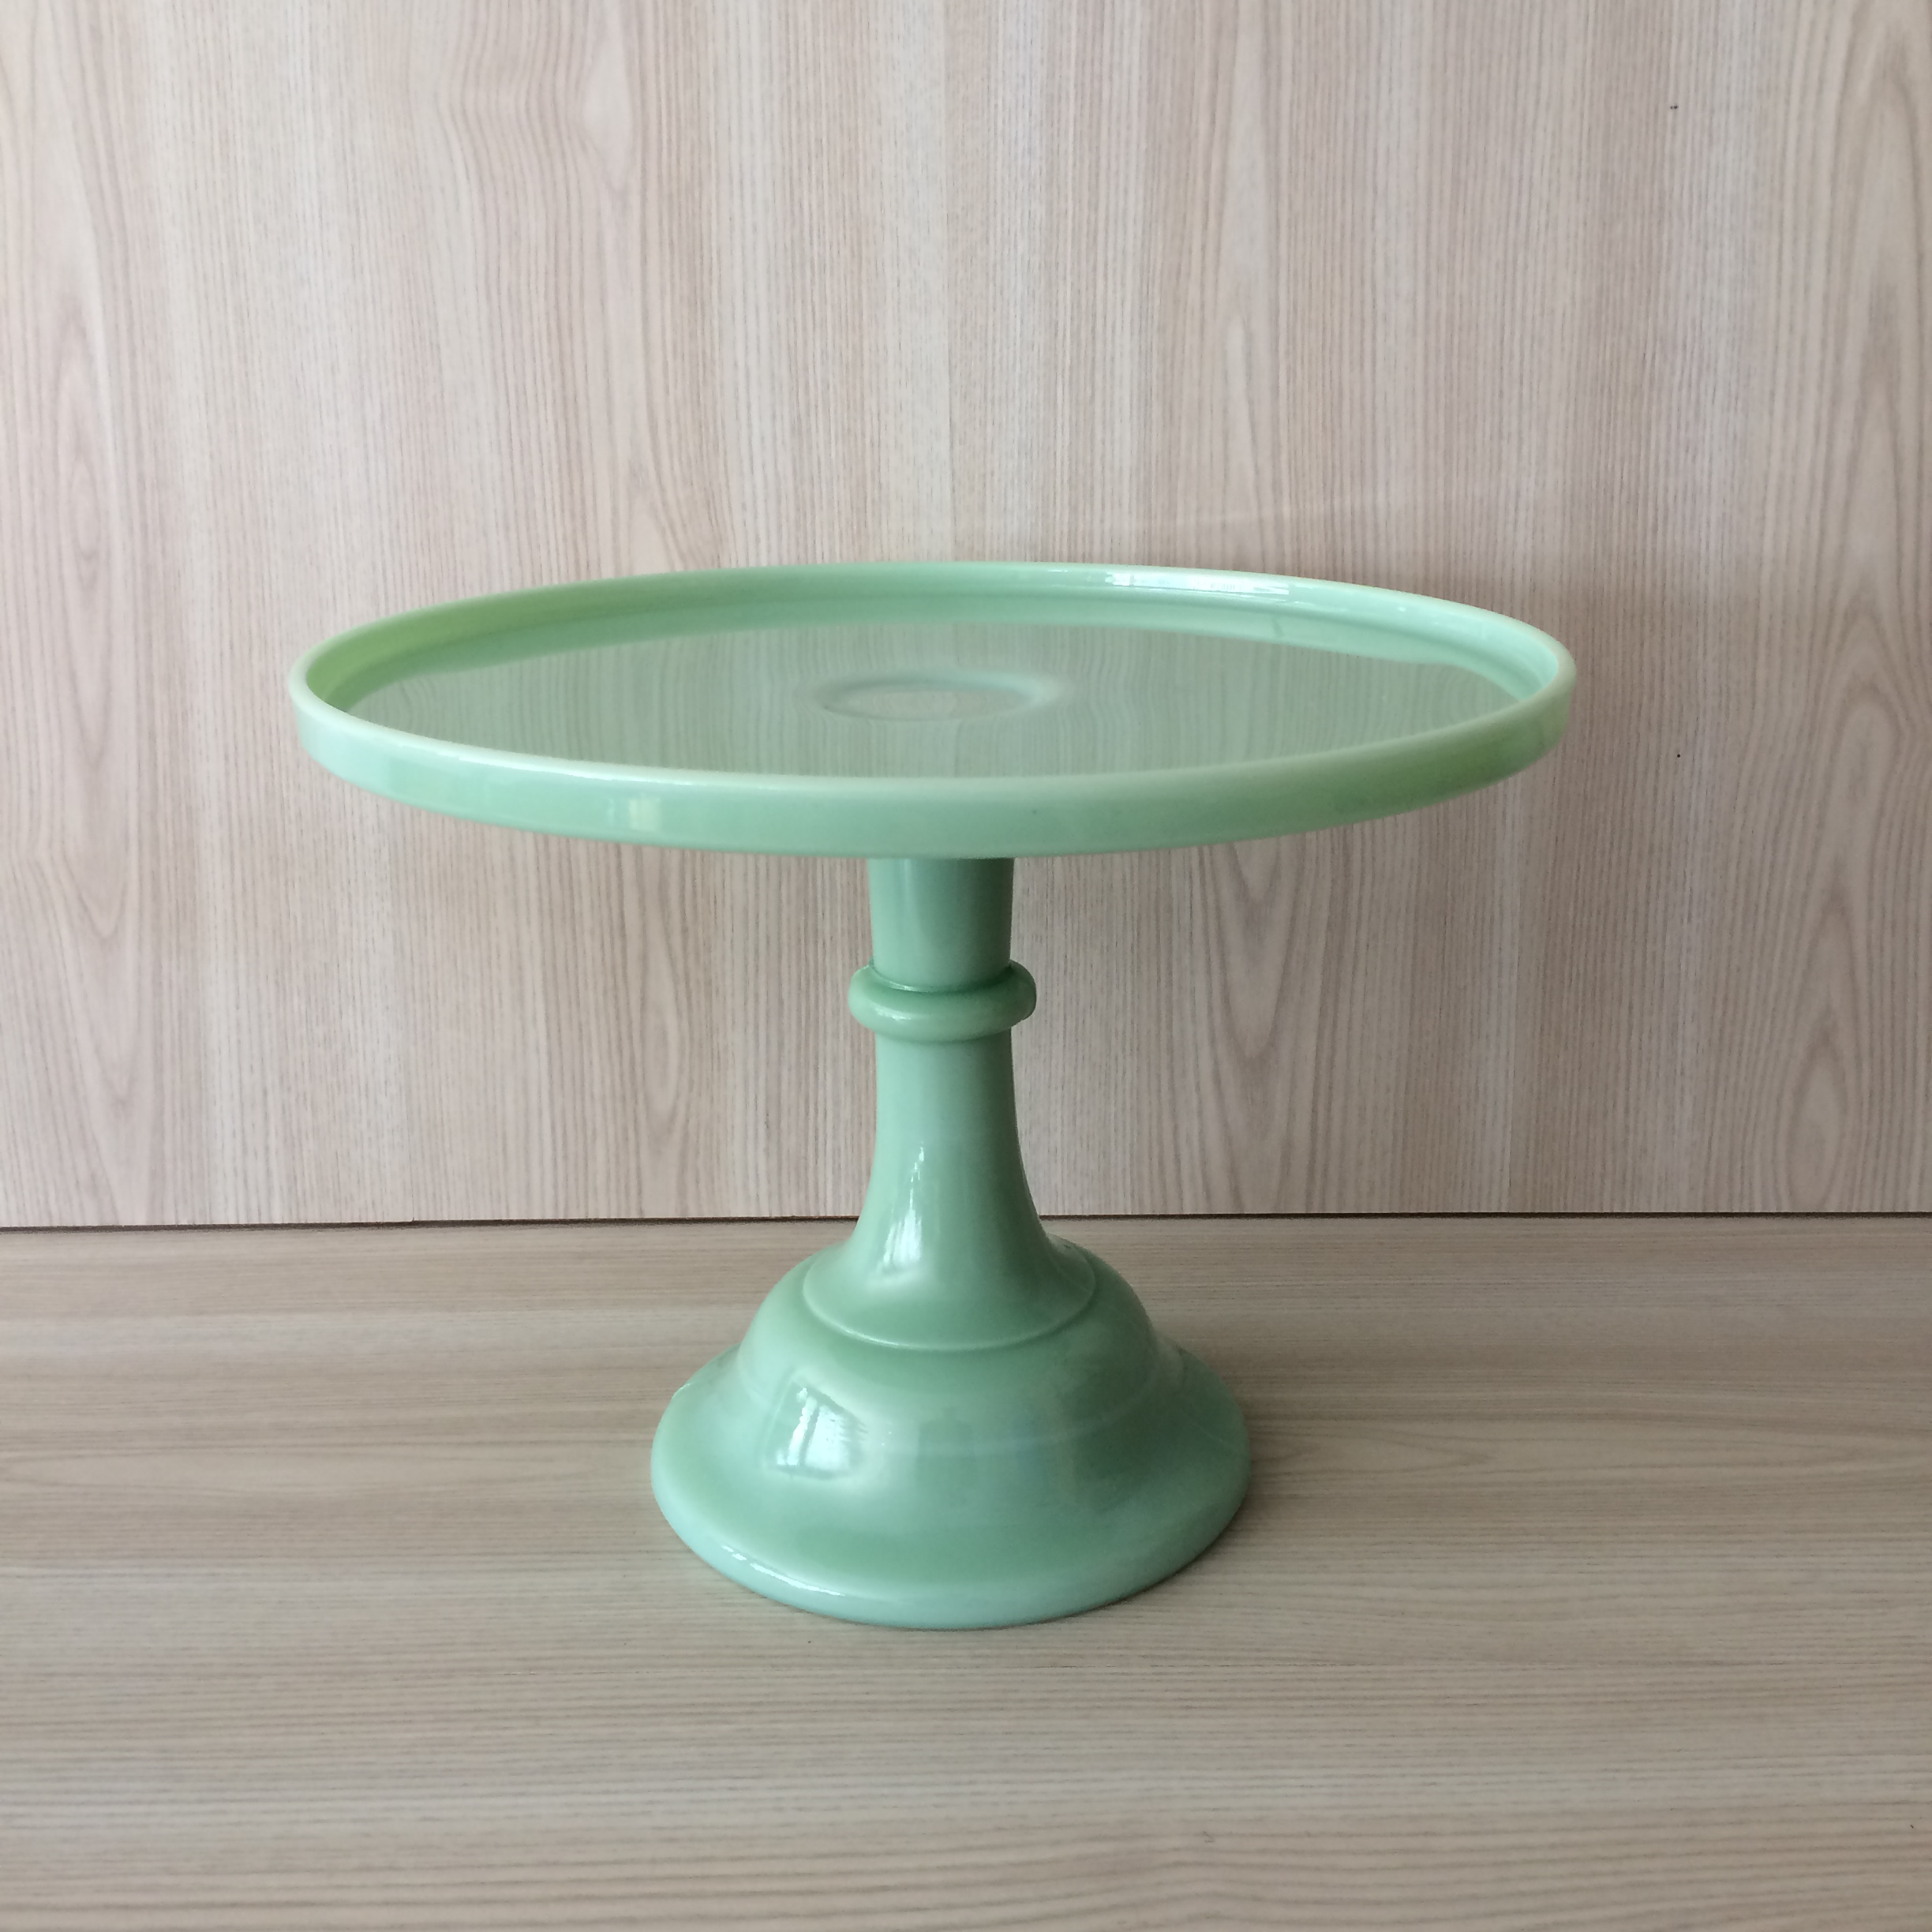 props auckland cake glass gallery marble new the milk large prop grey pretty pedestal zealand hire stand